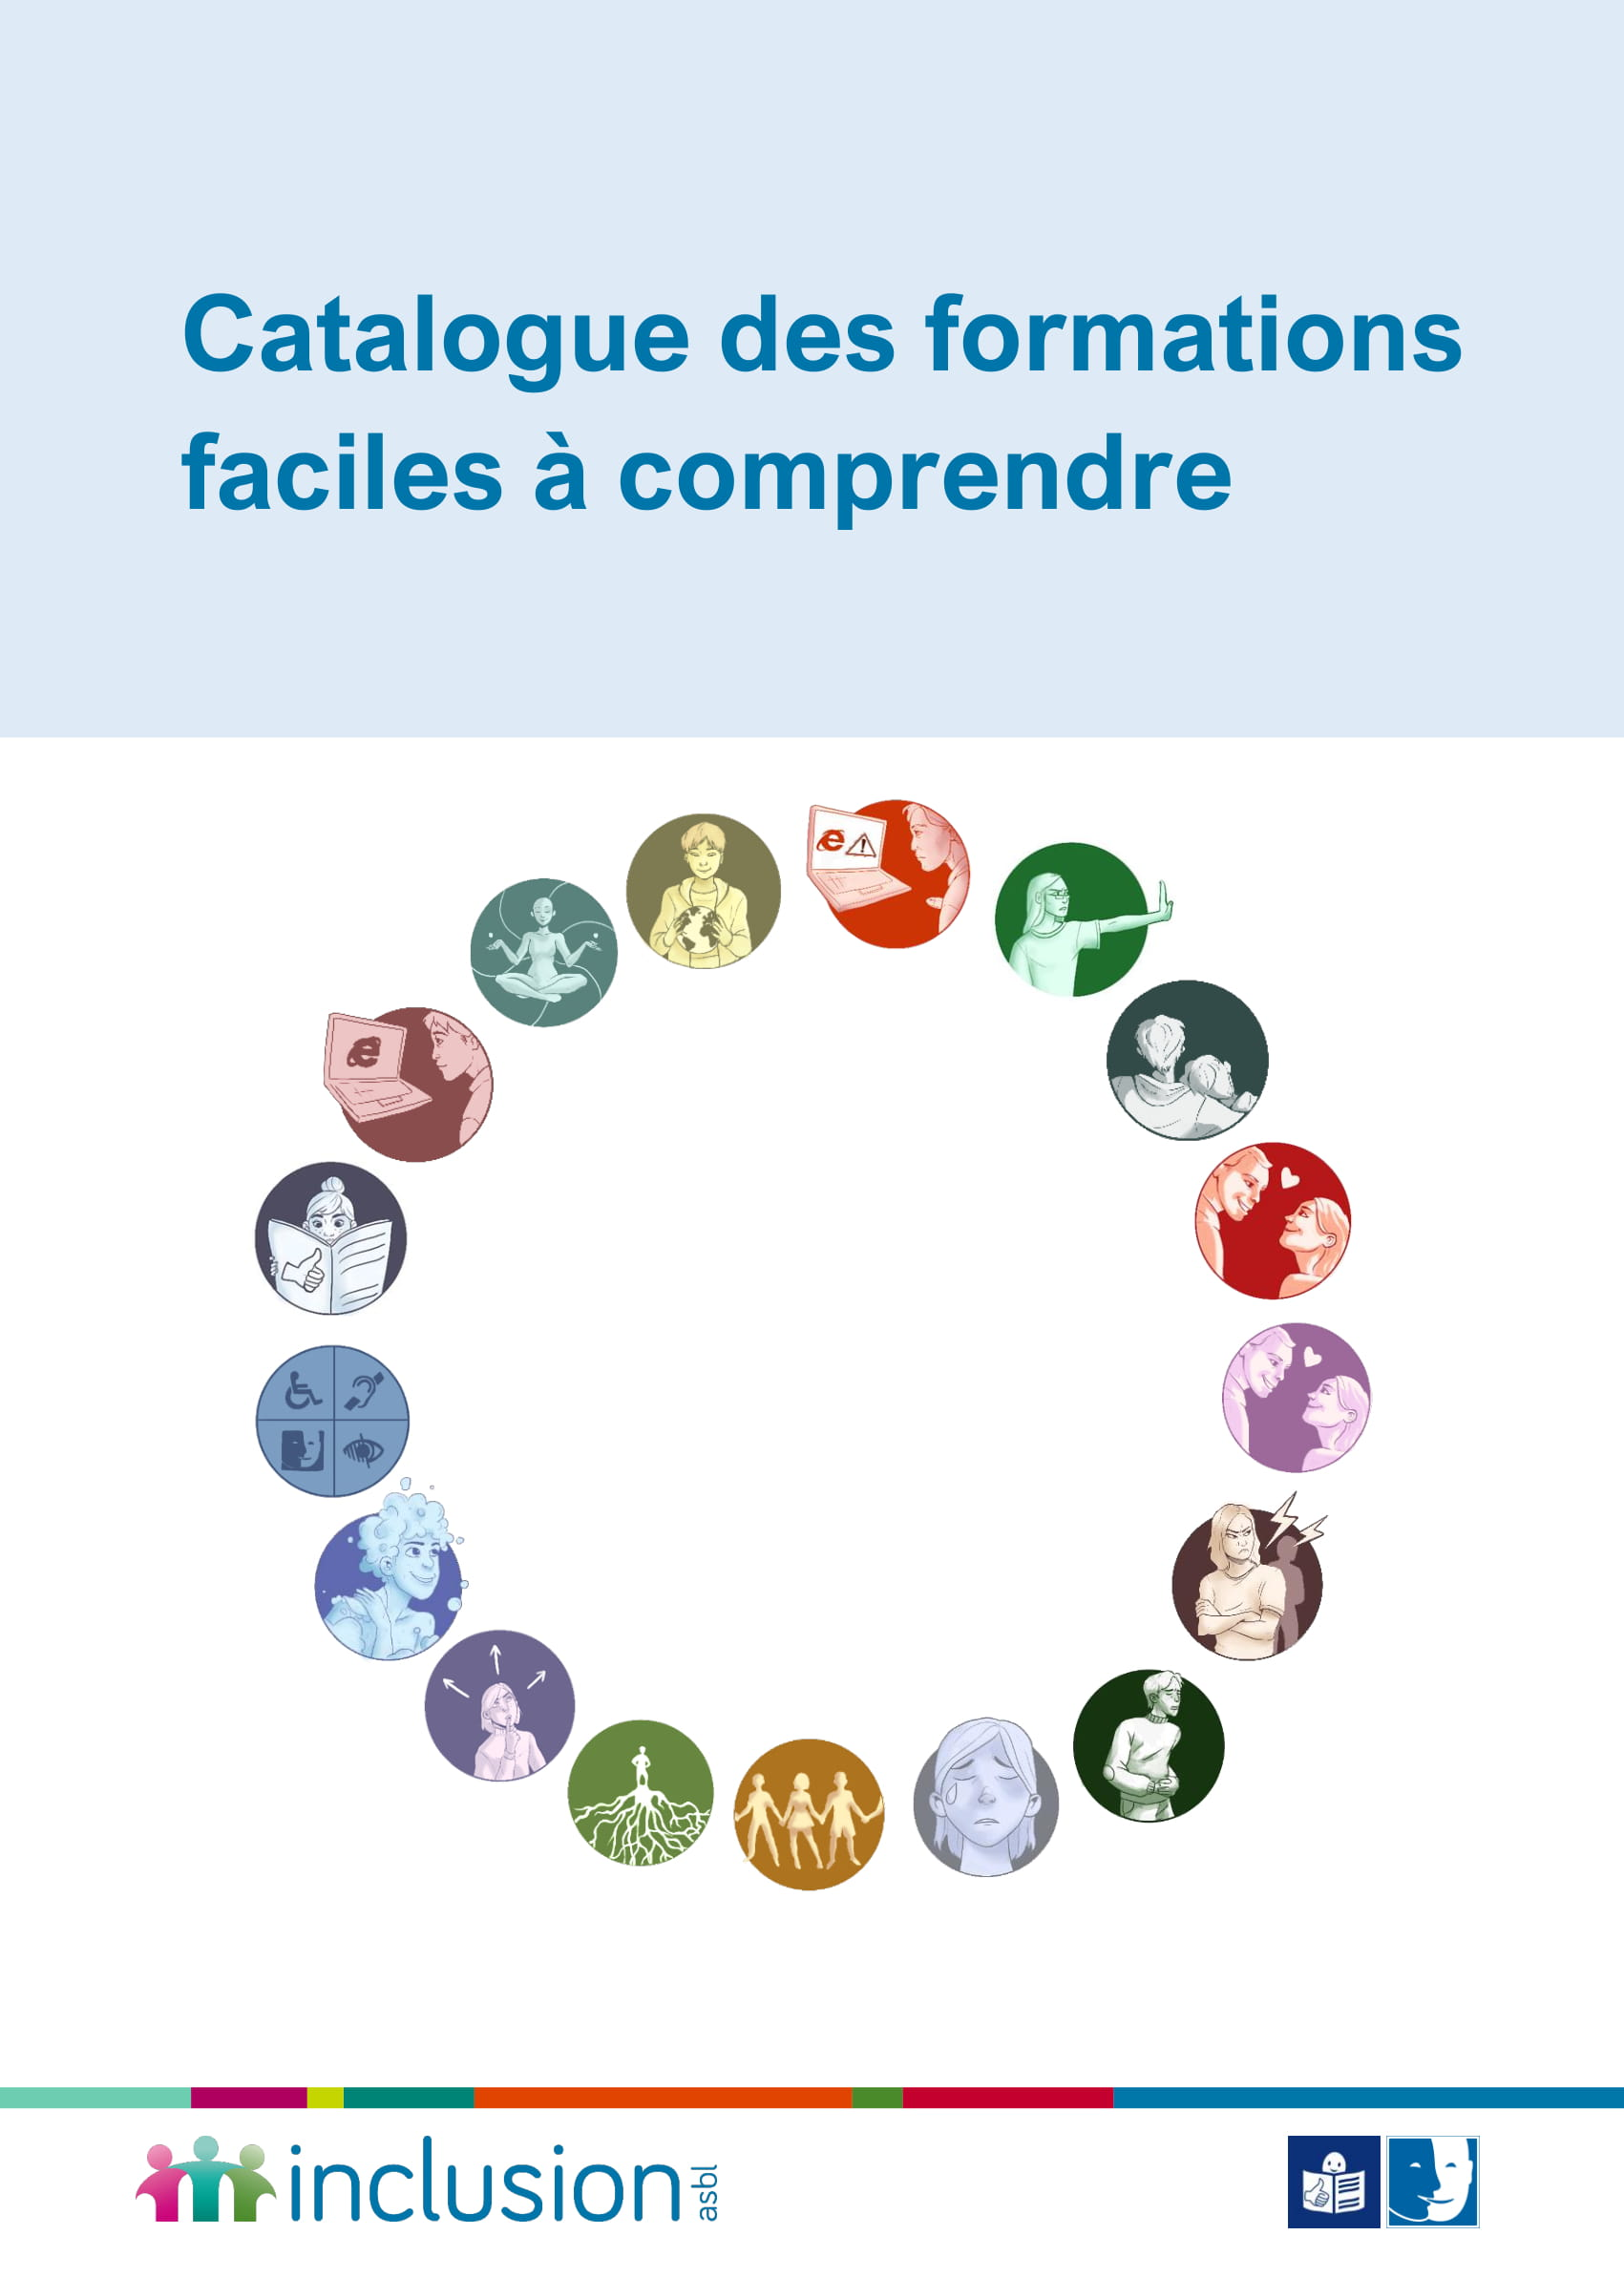 couverture du catalogue des formations faciles à comprendre